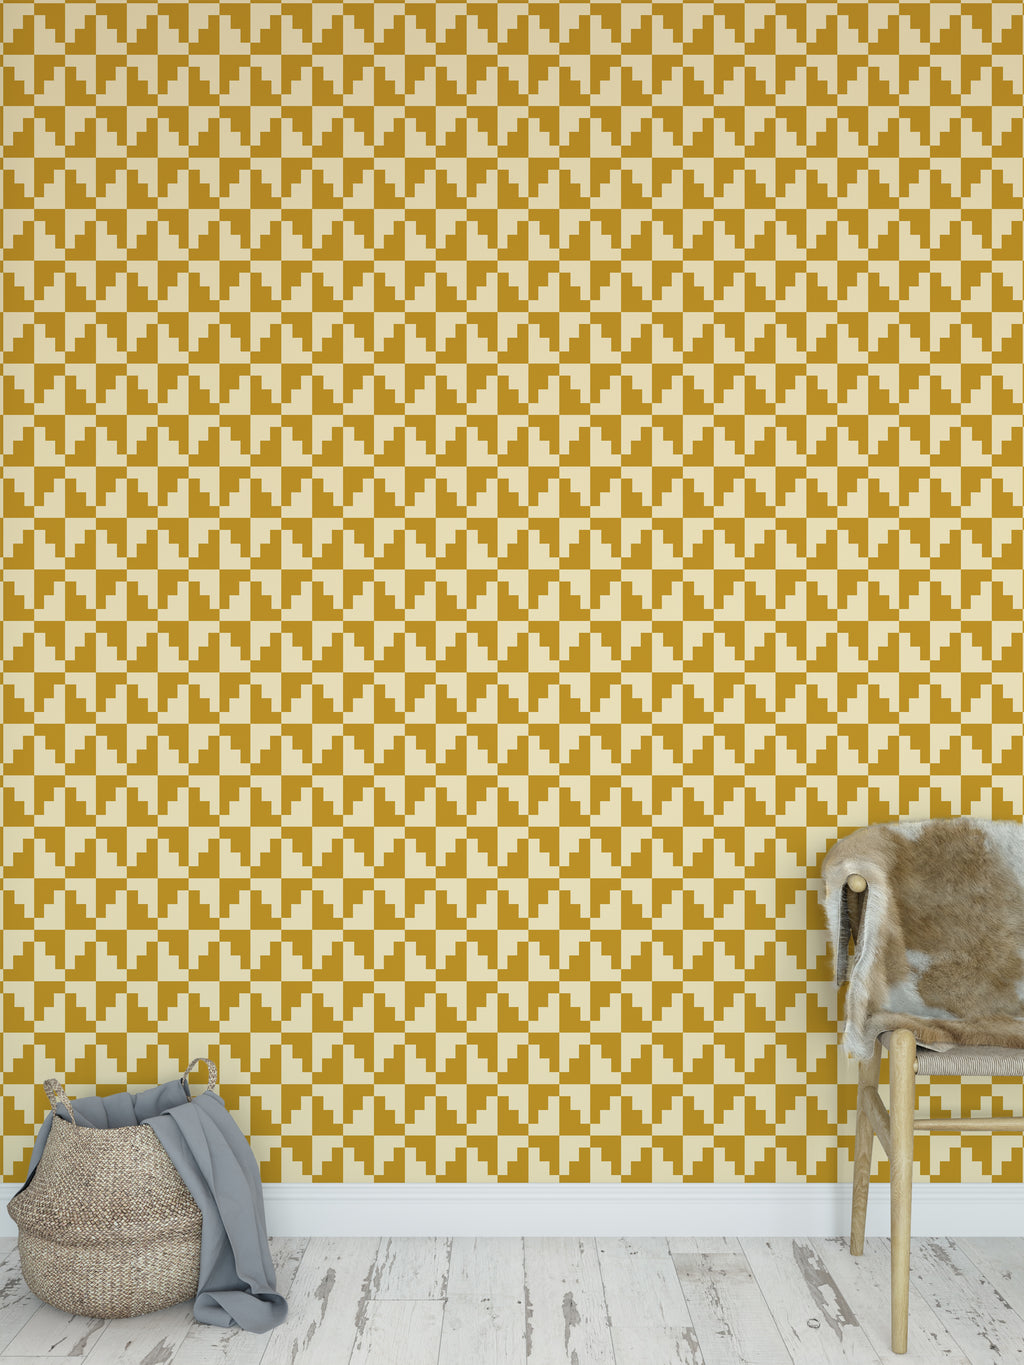 STAIRSTEP DIAMONDS GOLD Peel and Stick Wallpaper By Becky Bailey